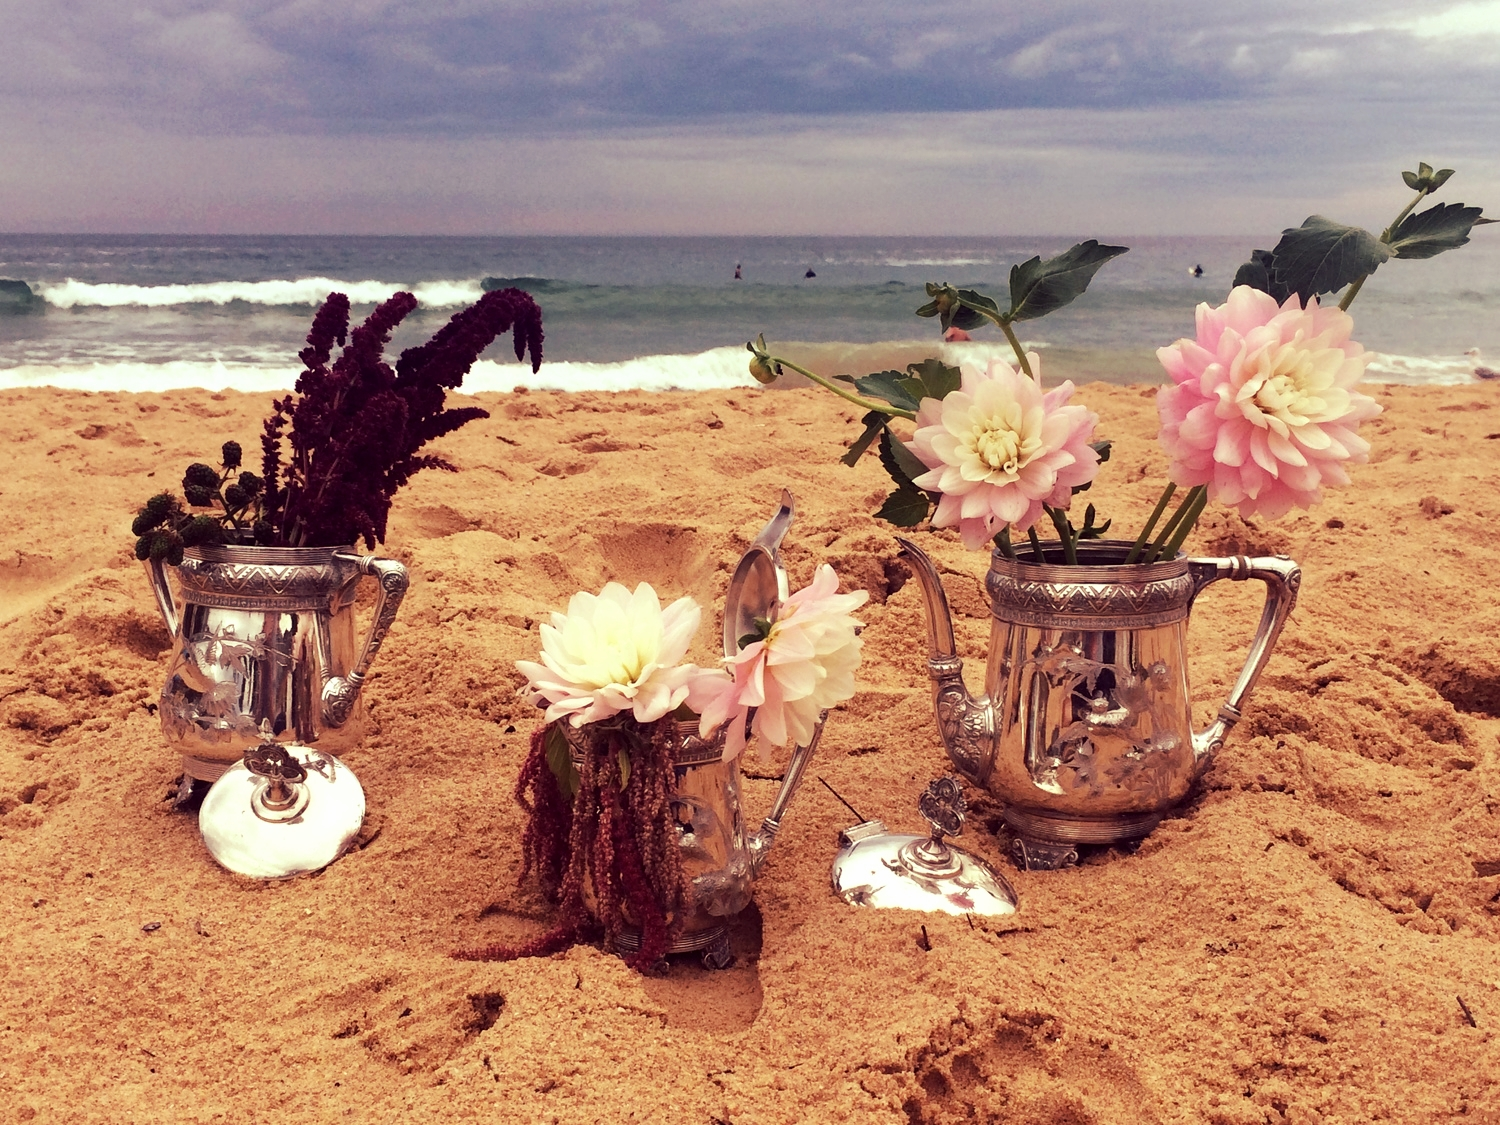 Surfers at Queenscliff Beach surrounded by a touch of vintage. Dahlia's, amaranthus & black berries dance upon the sand.